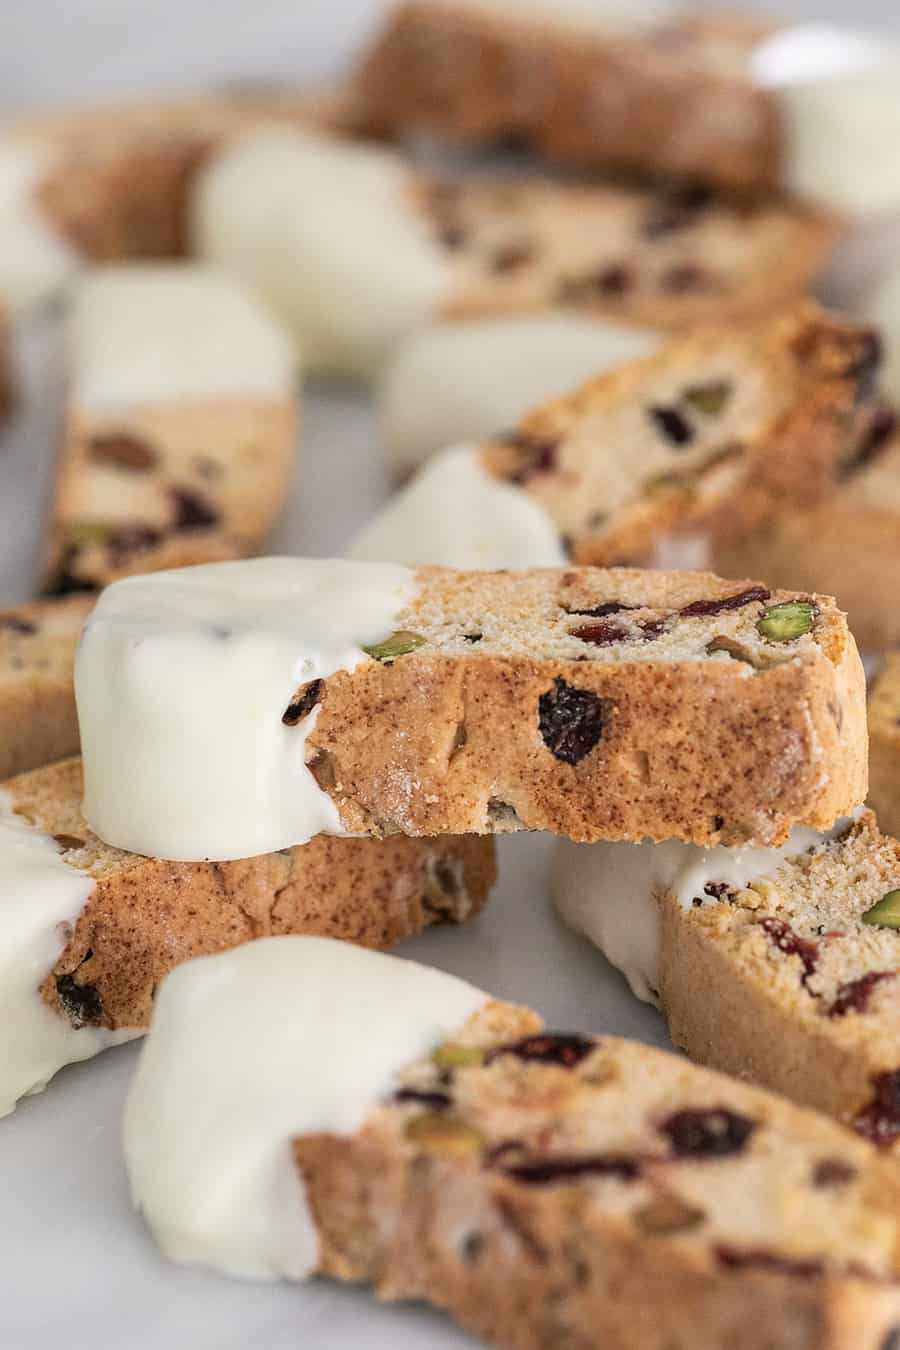 The best biscotti dipped in white chocolate.